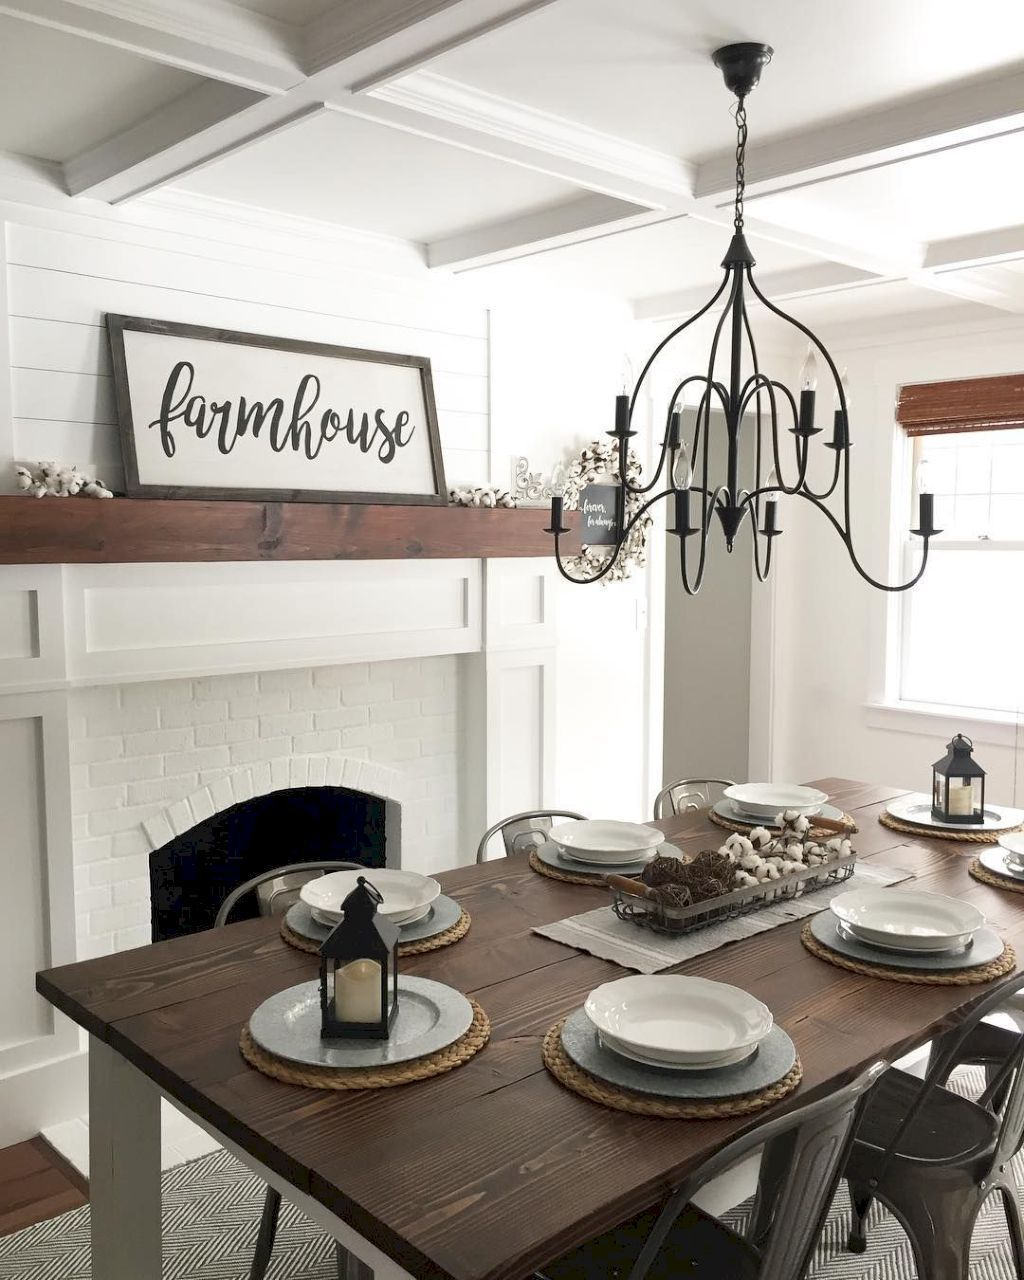 Dining Room Remodel Pictures Classy 40 Comfy Modern Farmhouse Dining Room Remodel Ideas  Modern Design Decoration